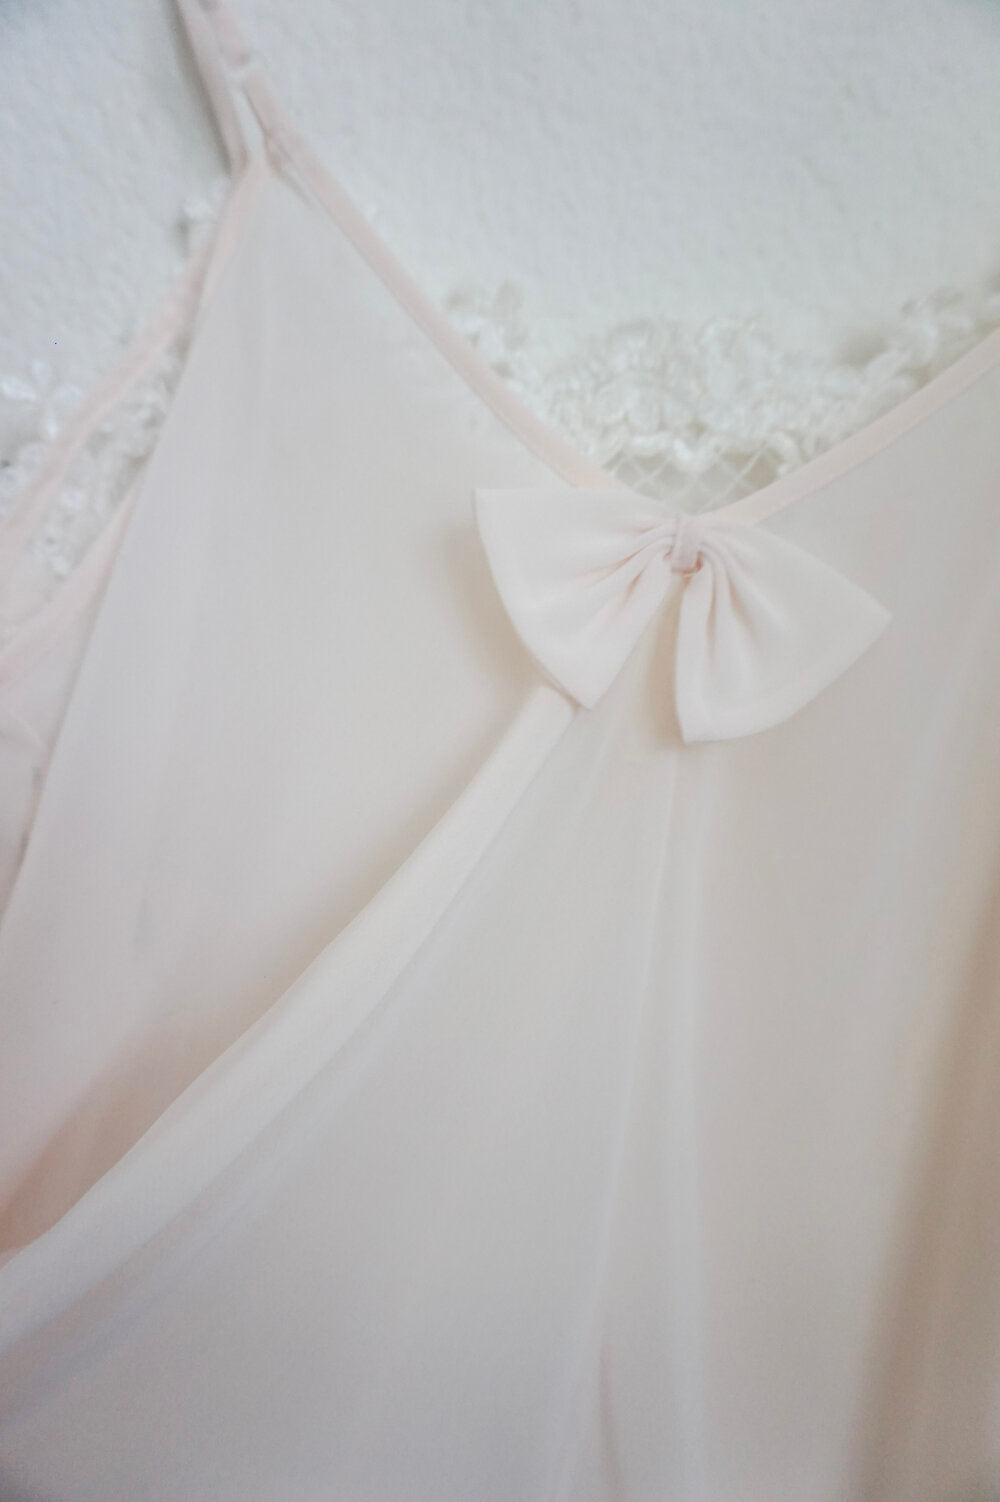 Private Luxuries sheer blush pink lace nightie size M